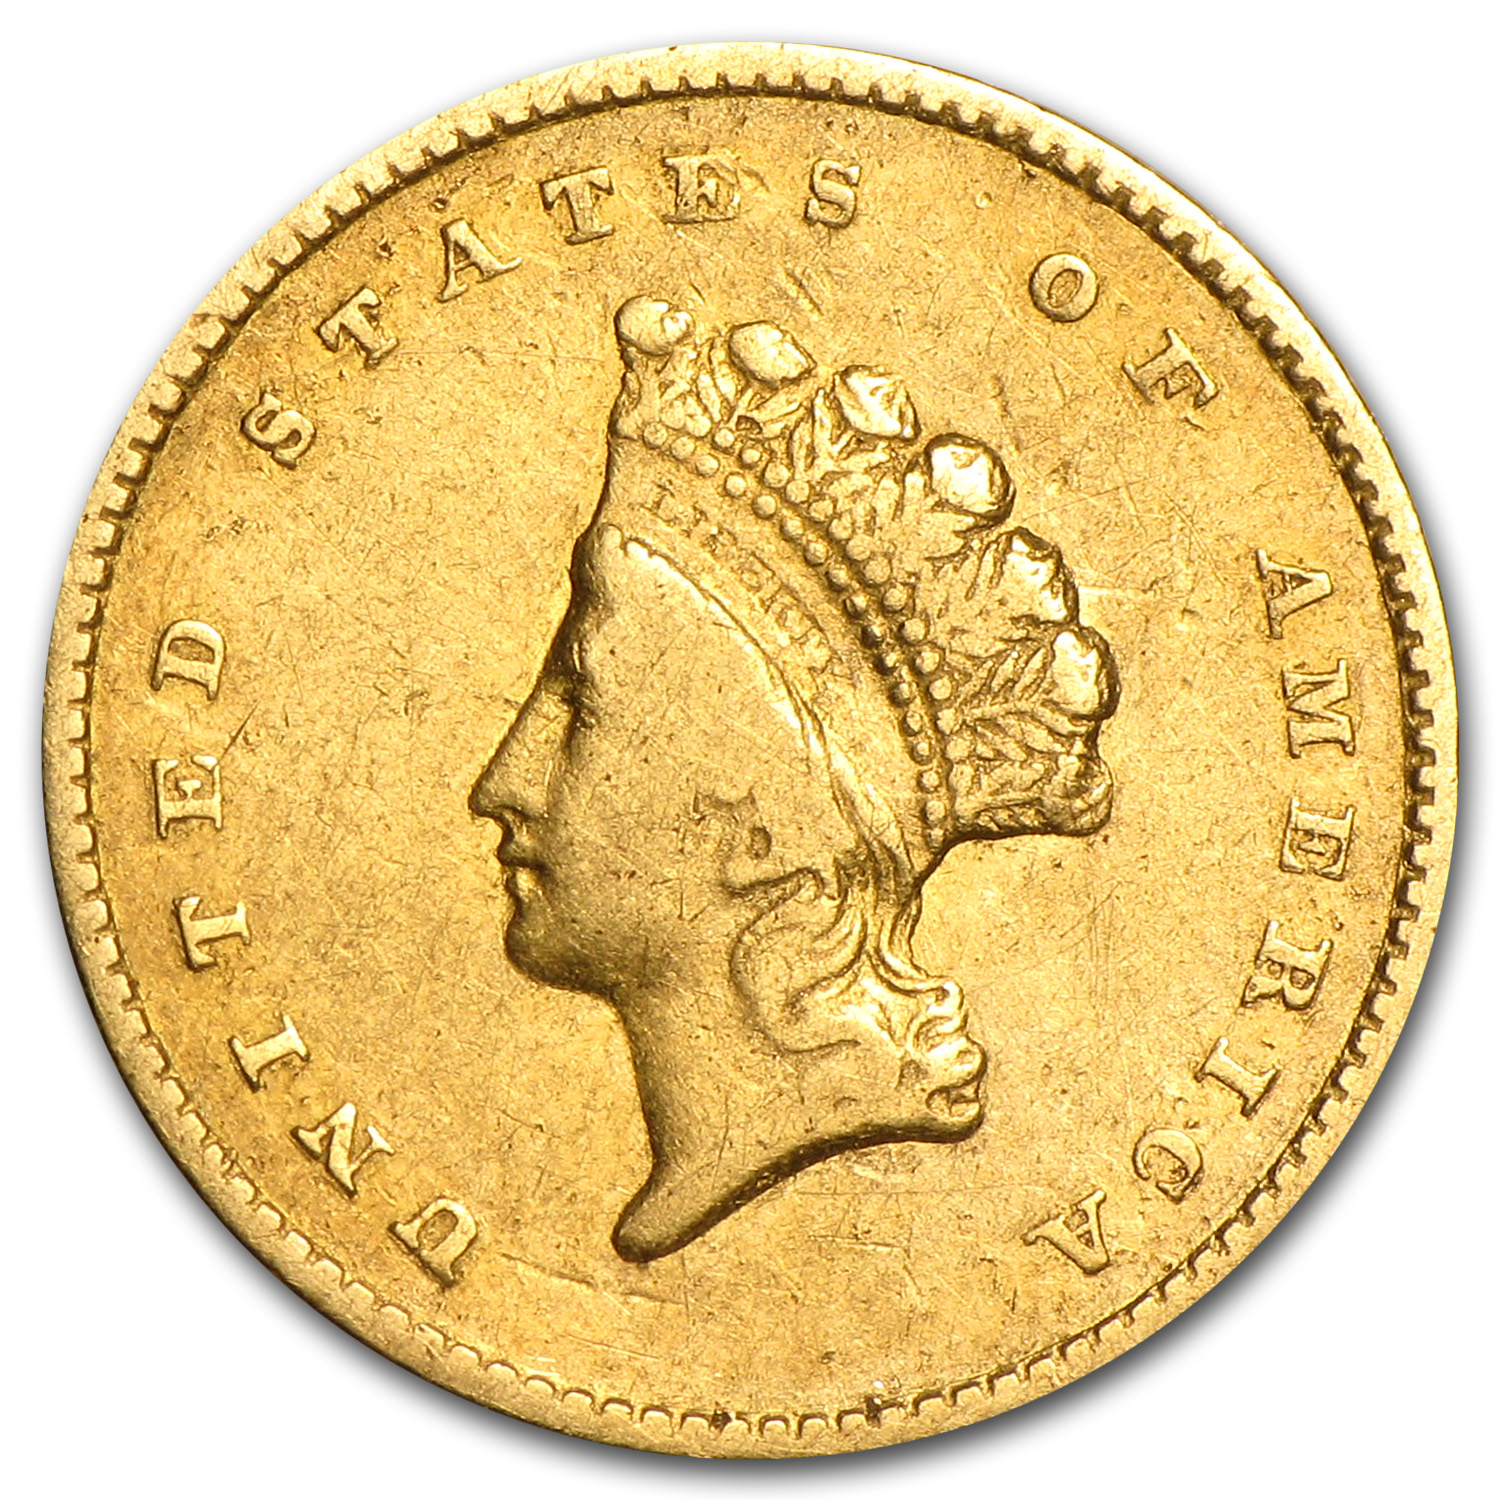 1855 $1 Indian Head Gold VF